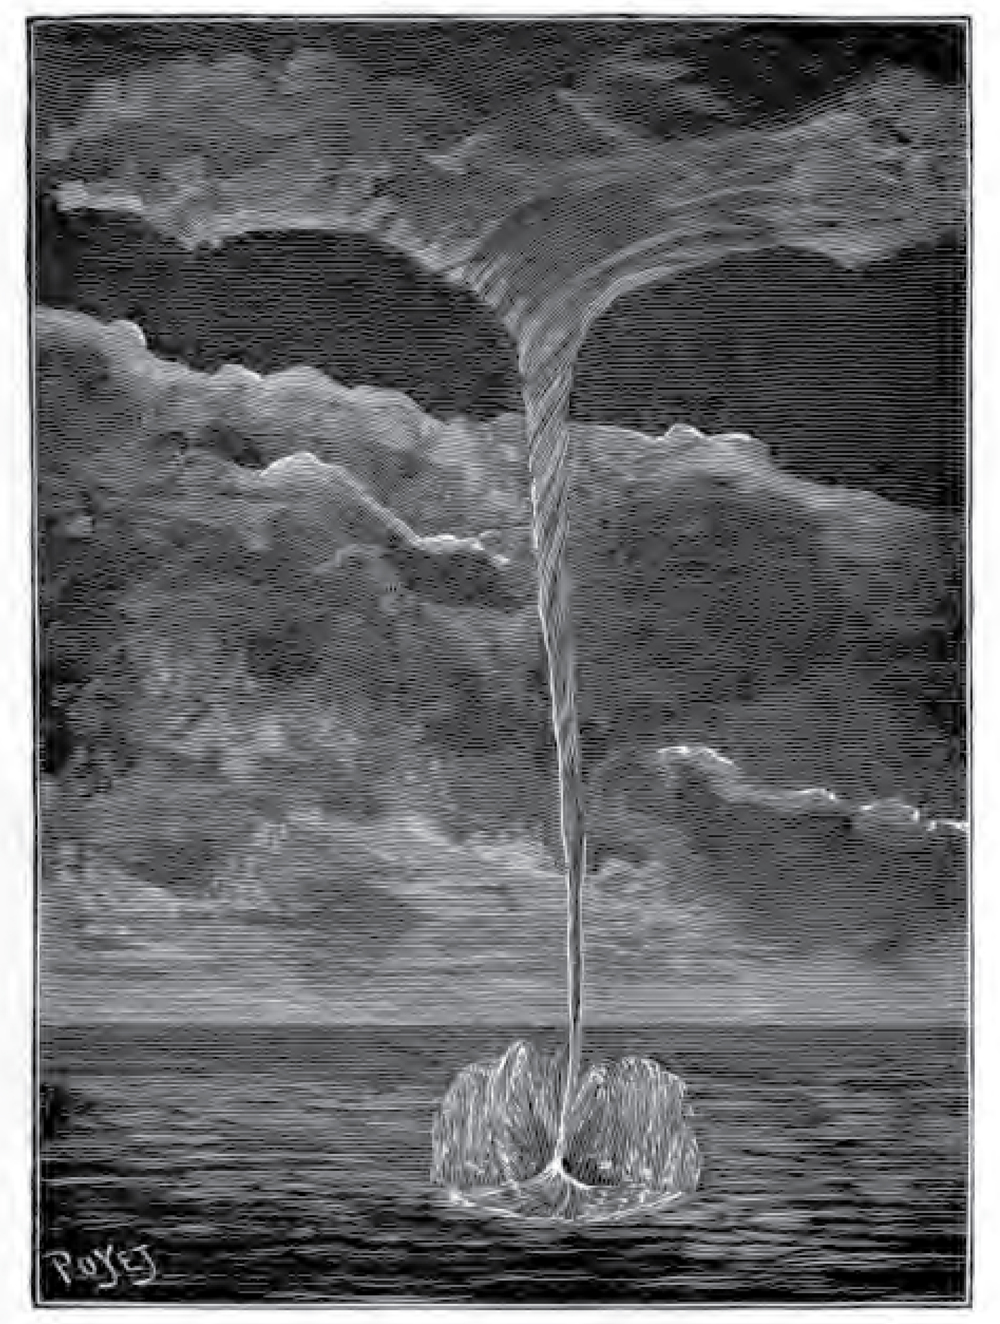 Depiction of a waterspout from  Sur les tourbillons, trombes, tempêtes et sphères tournantes  (1889)  a book containing laboratory experiments on tornado and waterspout formation by the French engineer  Charles Louis Weyher  (1836–1916).